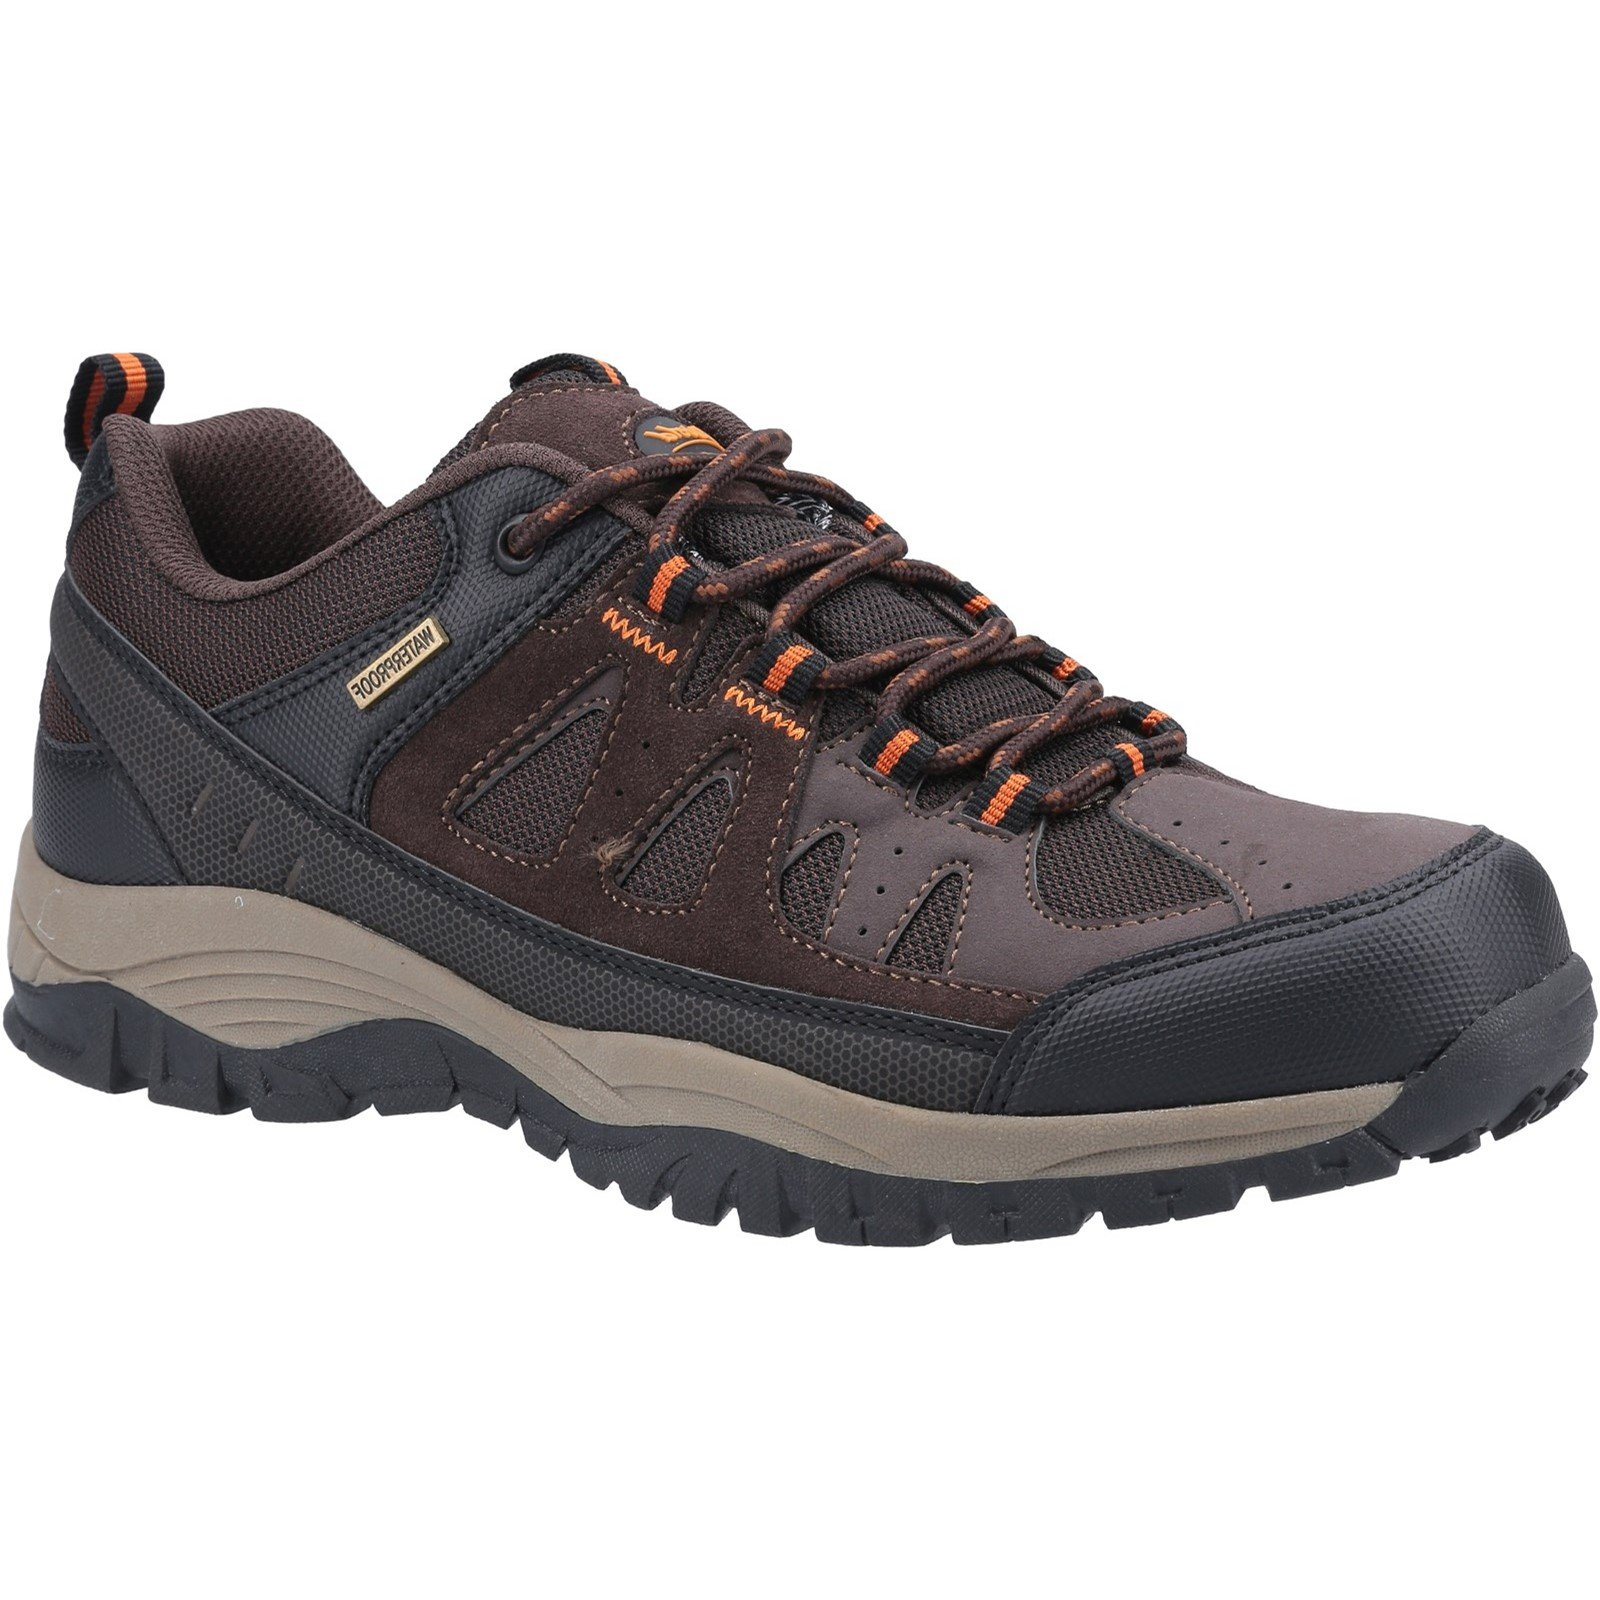 Cotswold Men's Maisemore Low Hiking Boot 32987 - Brown 7